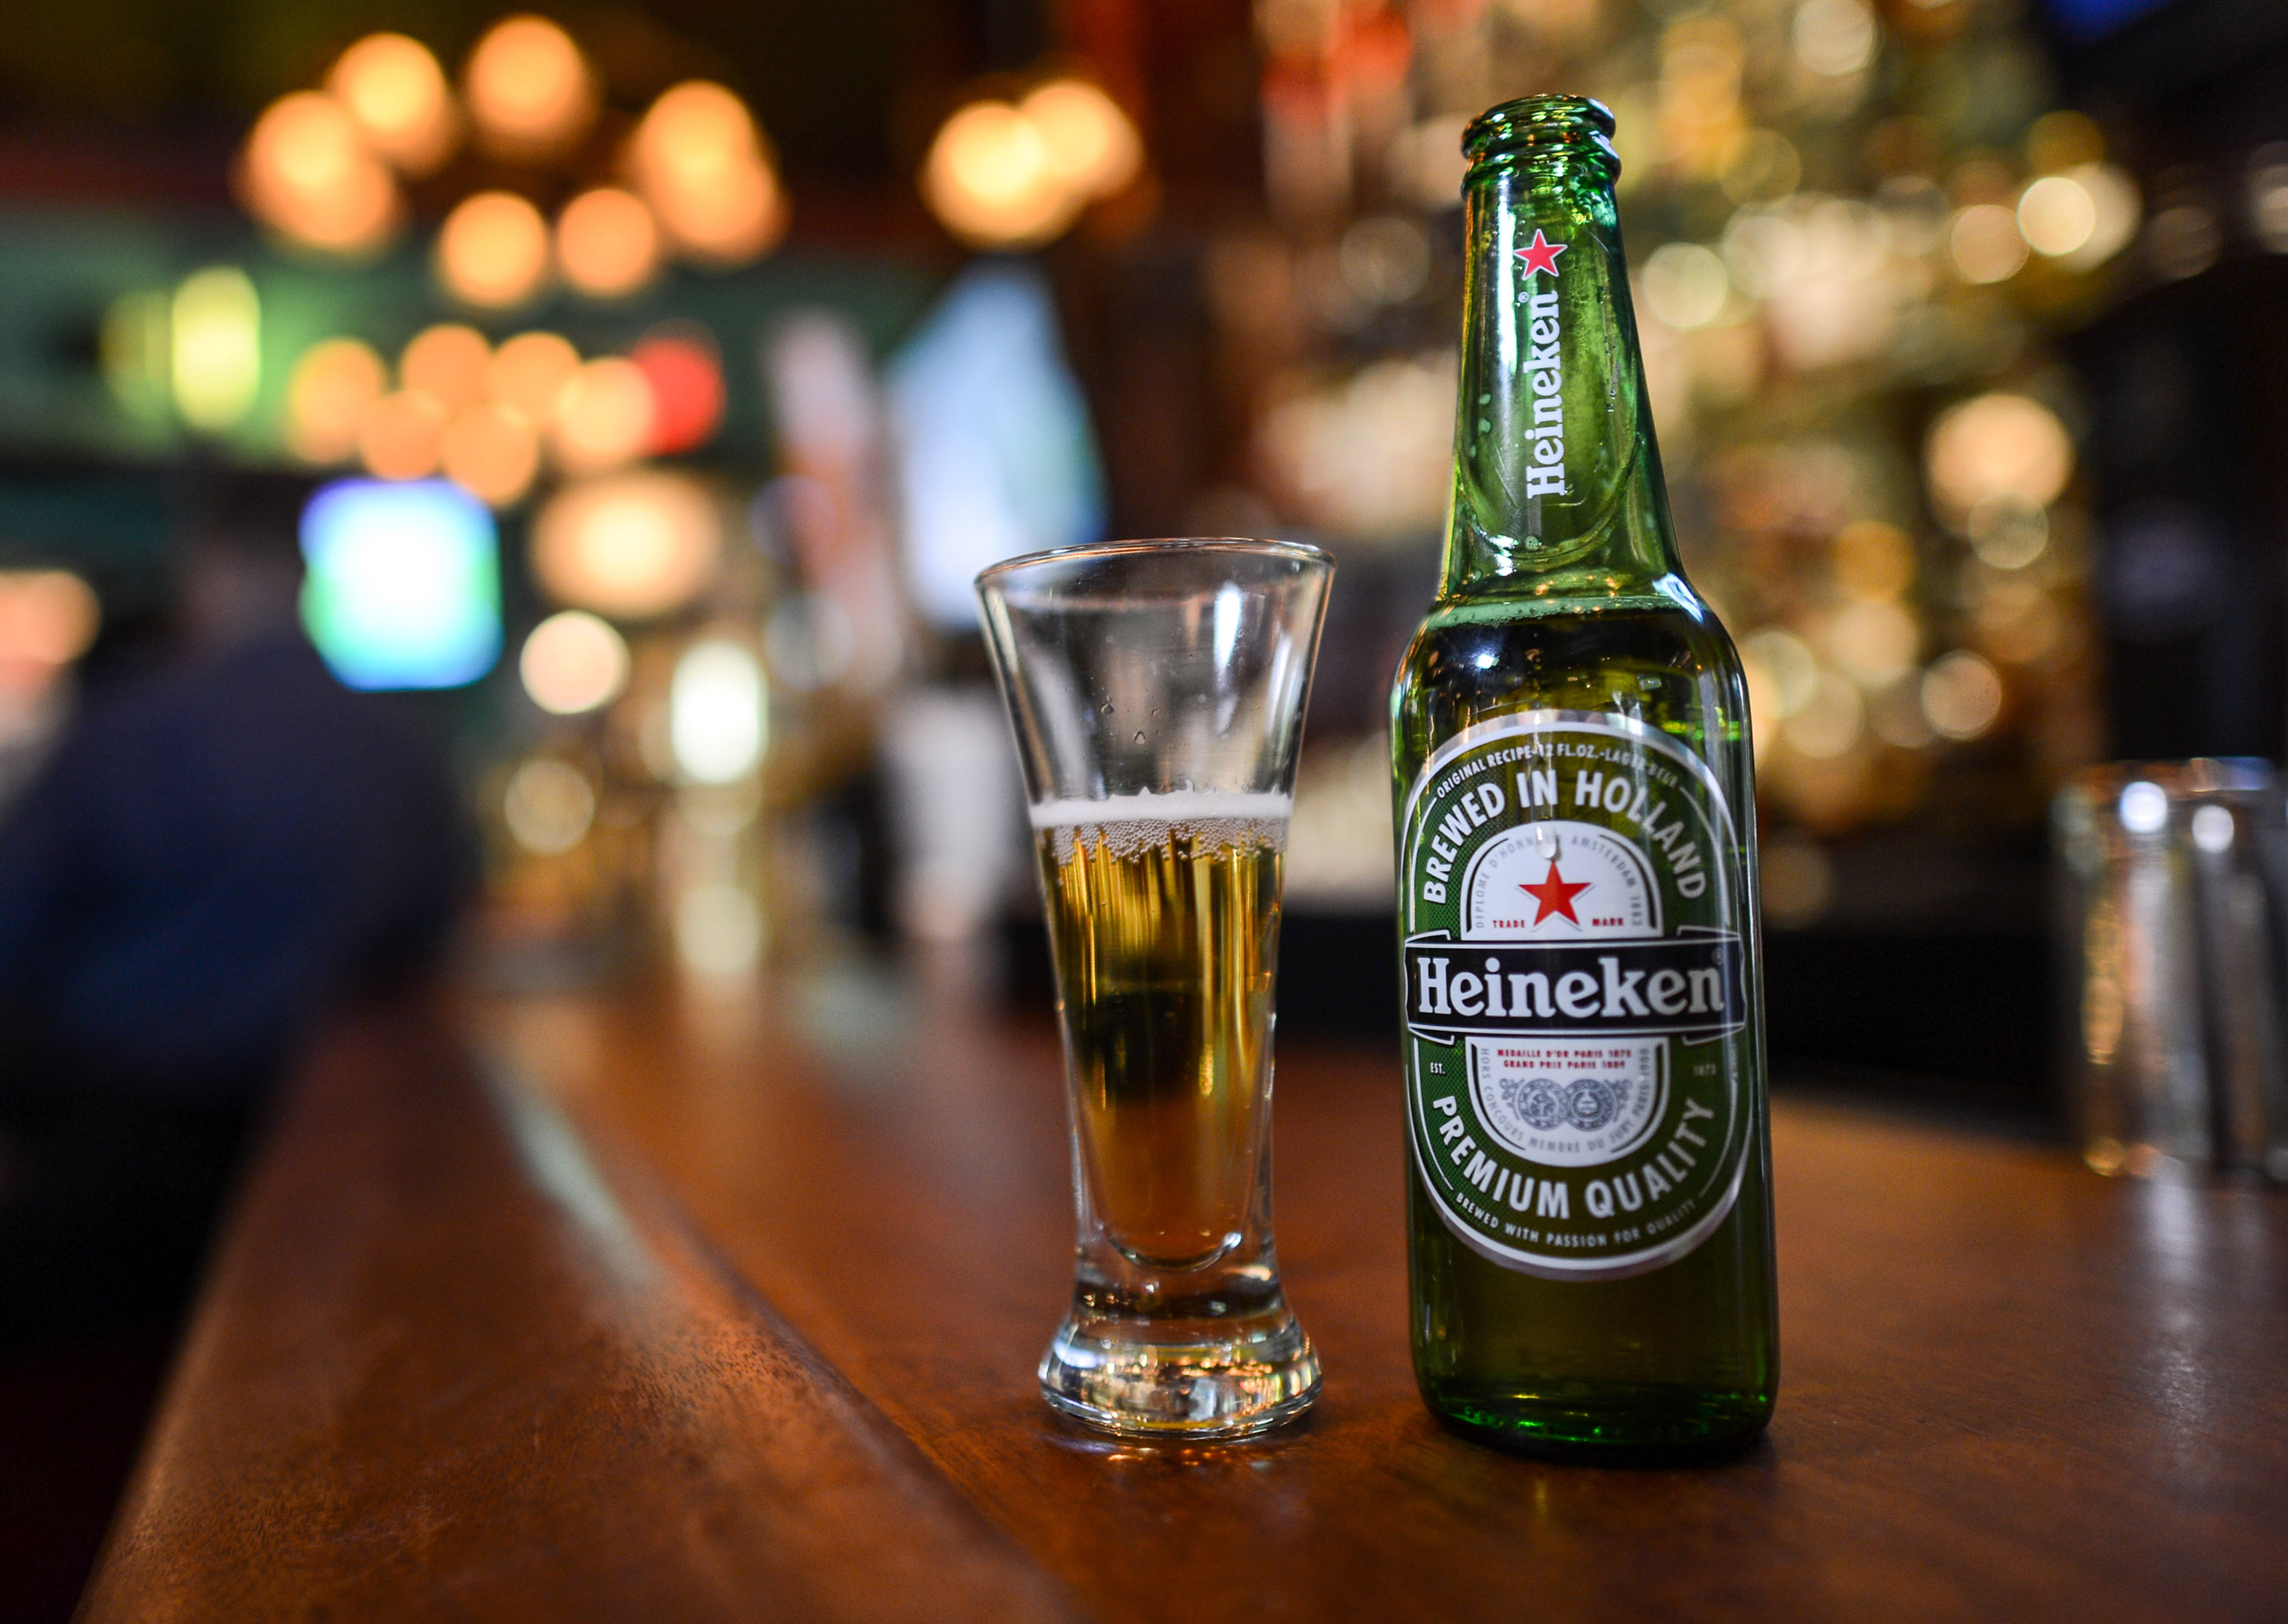 Heineken NV Revenue And Volume Improves More Slowly Than Anticipated